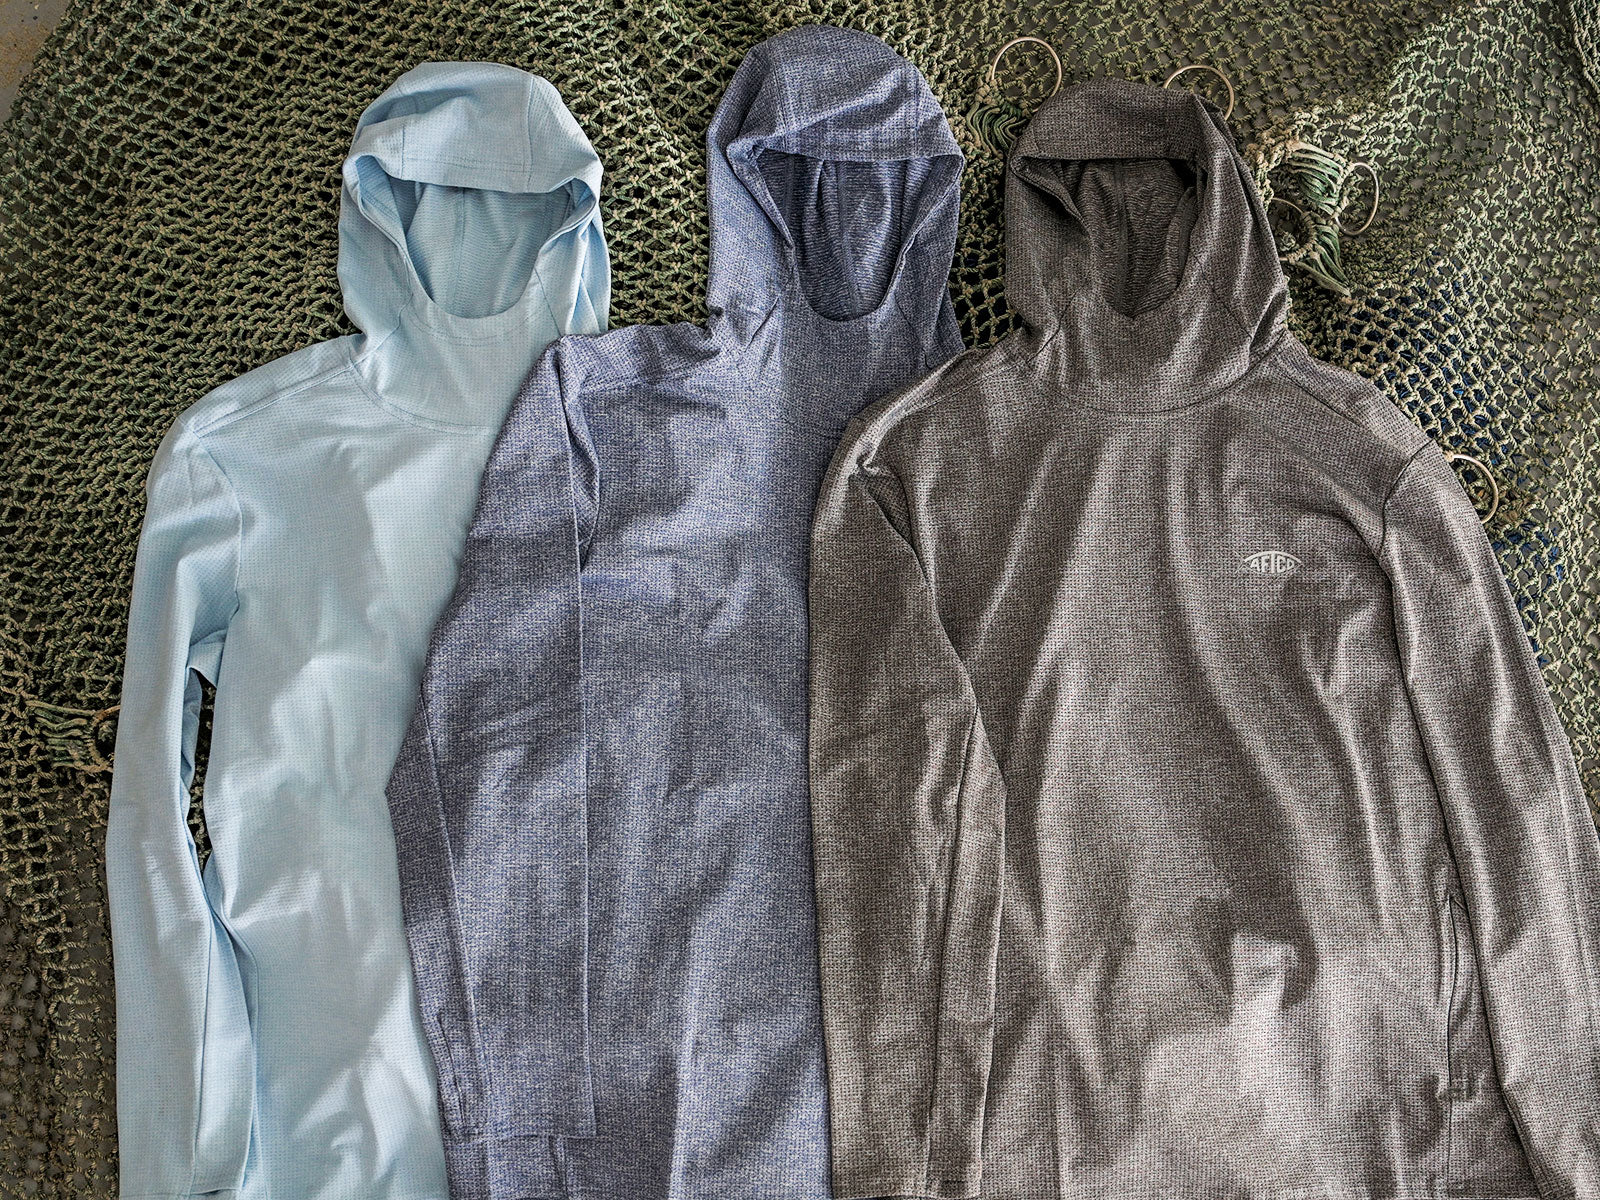 Rescue Hoodies on top of recycled nets